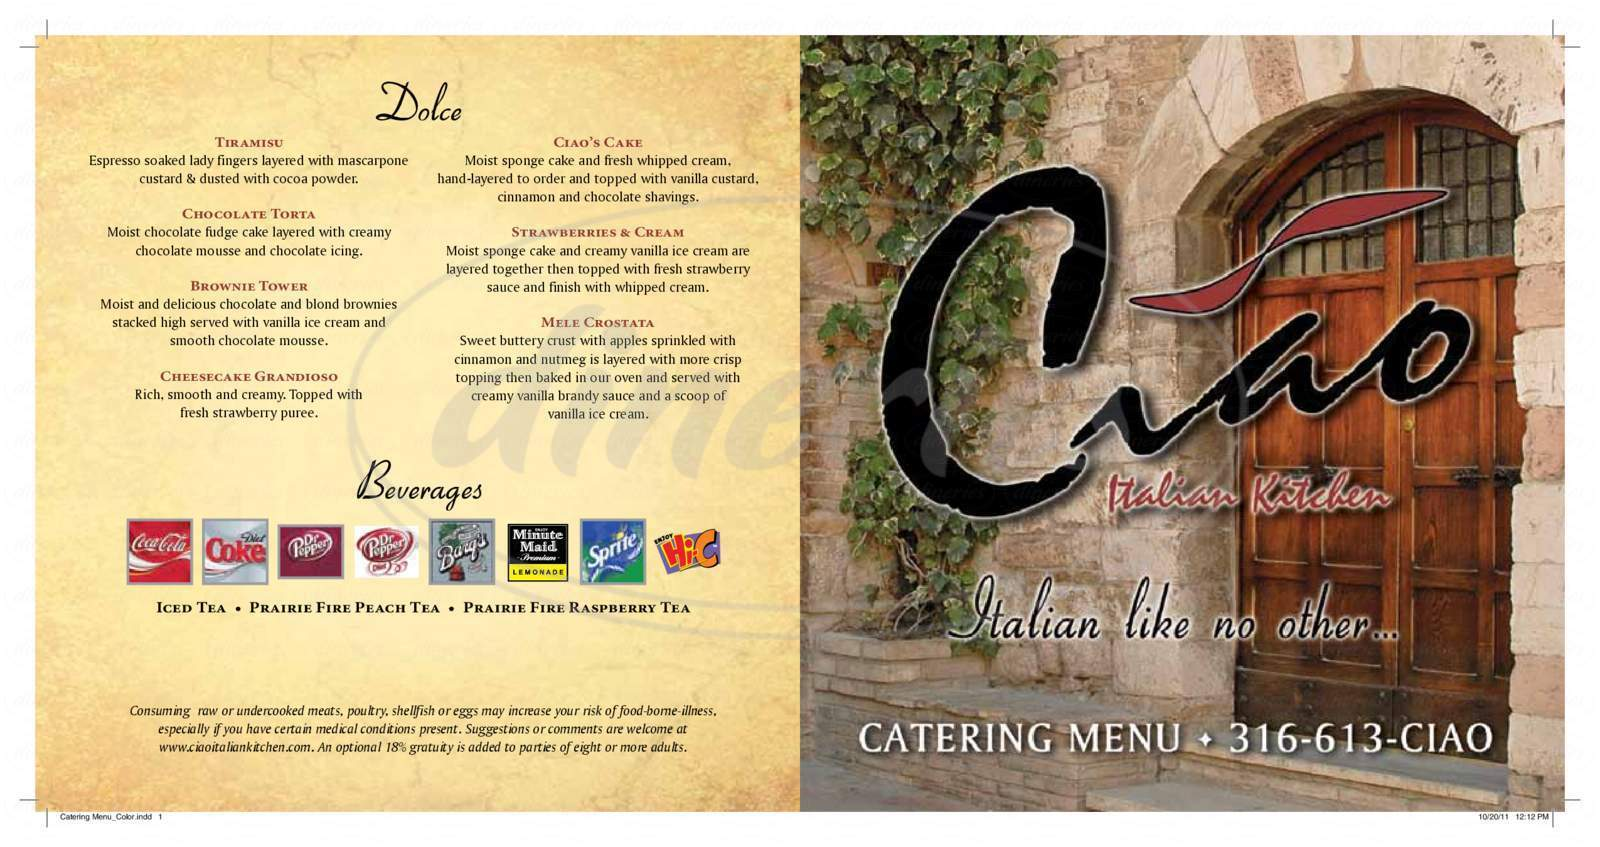 menu for Ciao Italian Kitchen